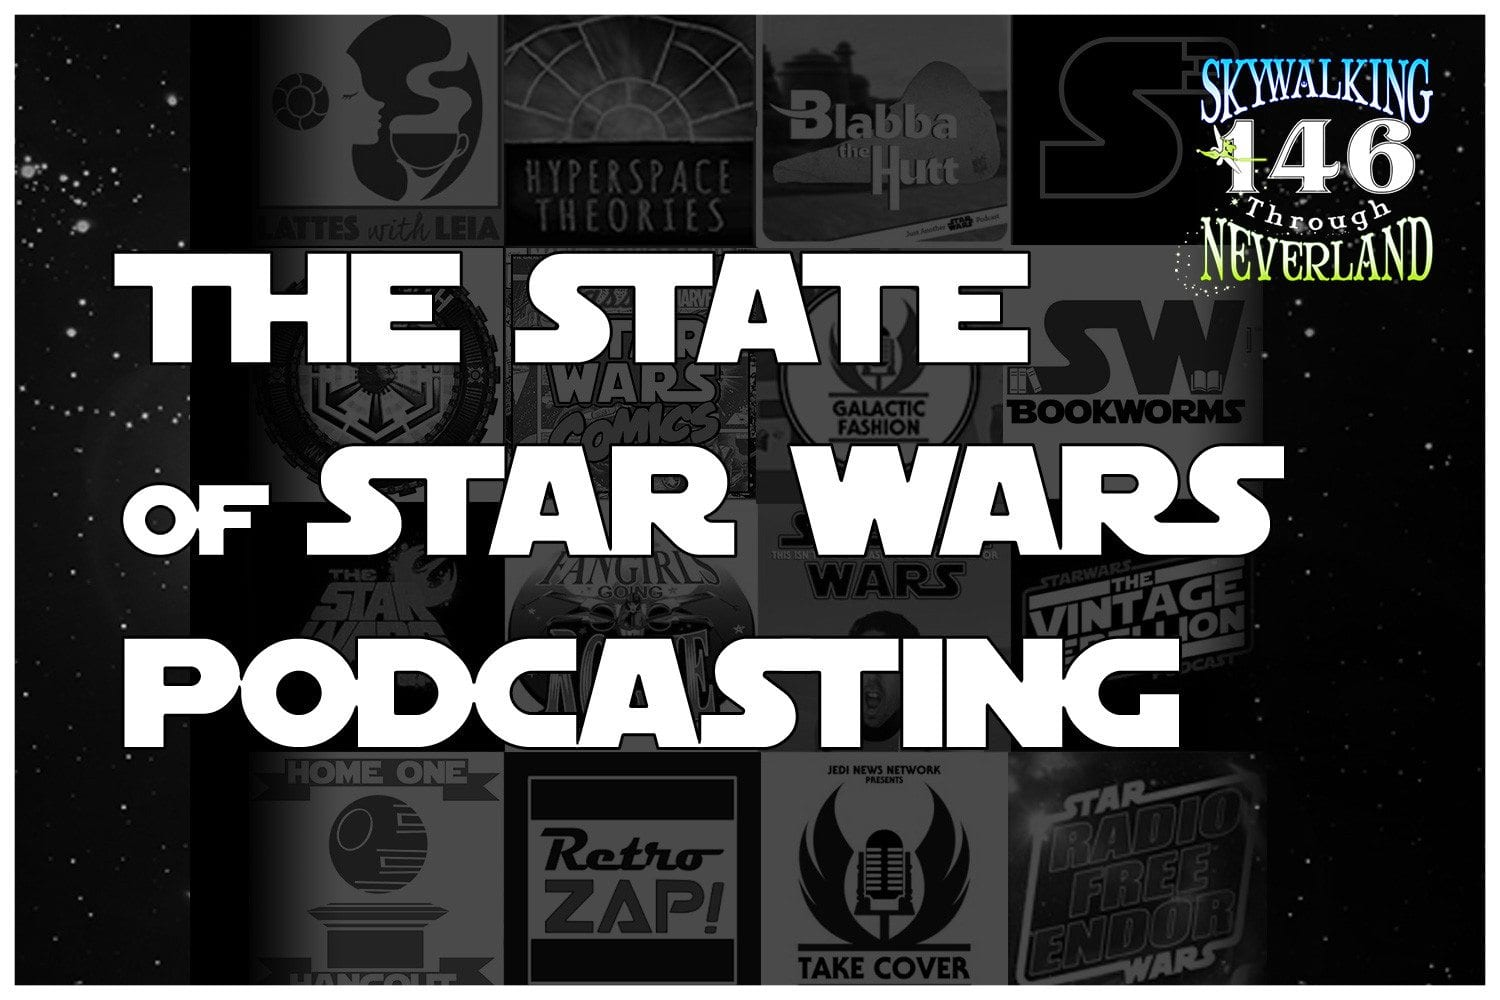 star wars podcasting